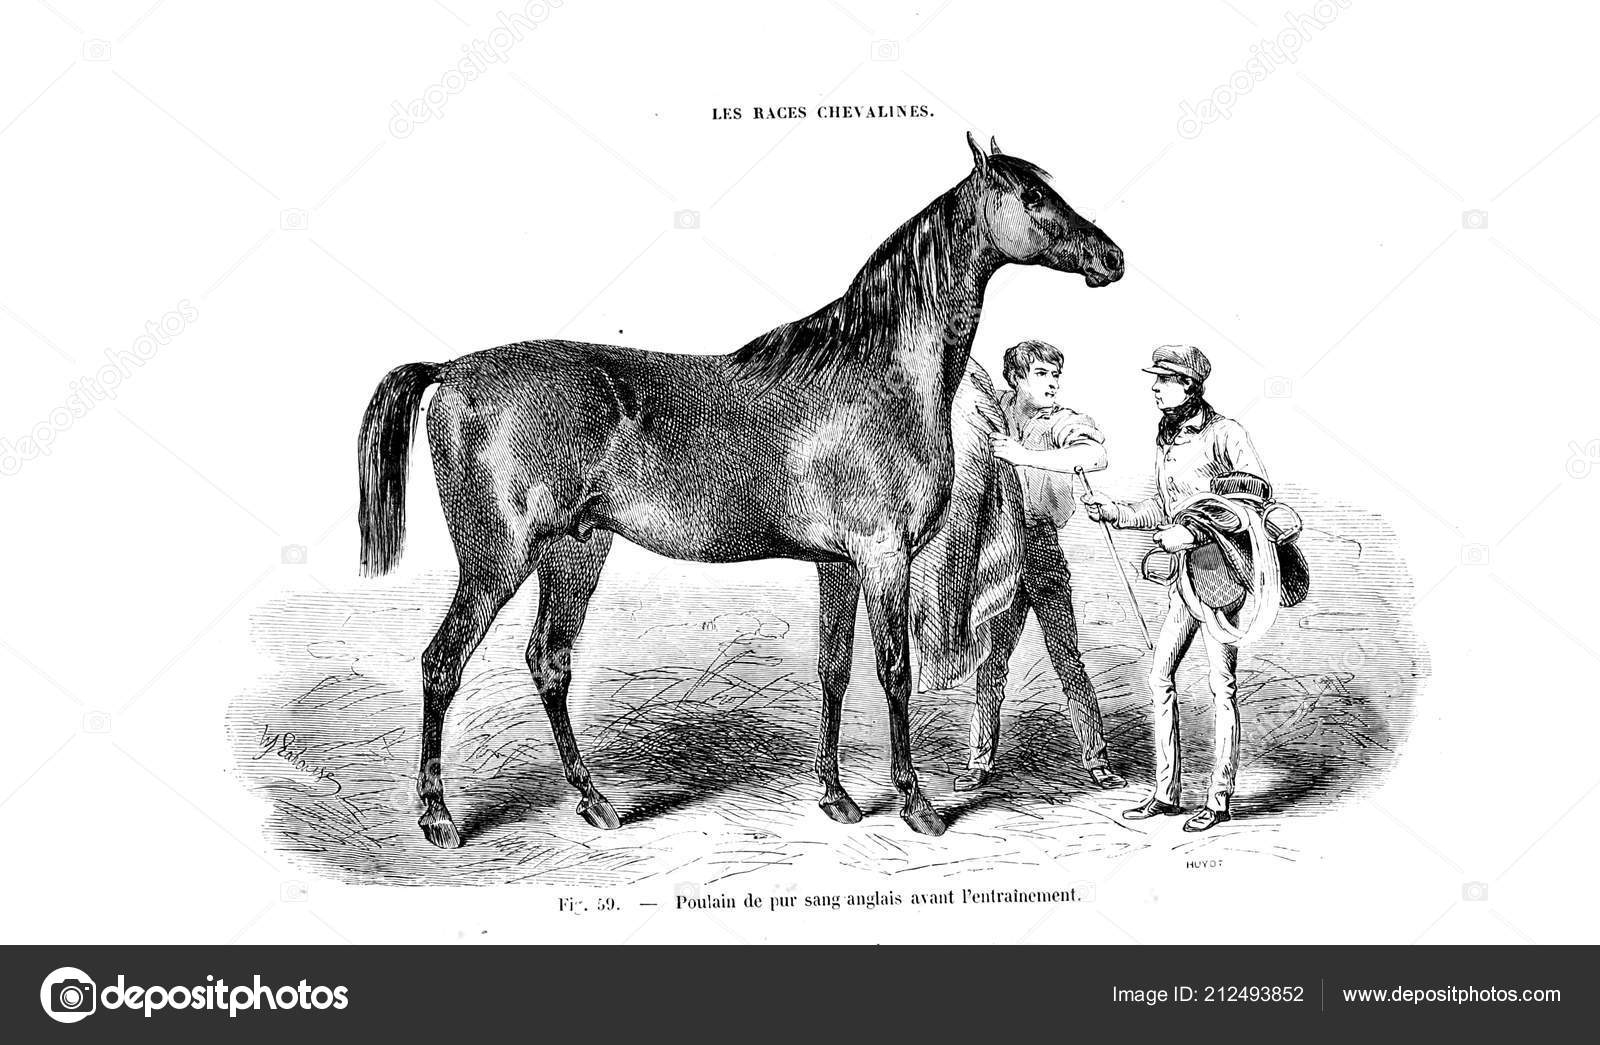 Illustration Horse Old Image Stock Photo C Ruskpp 212493852